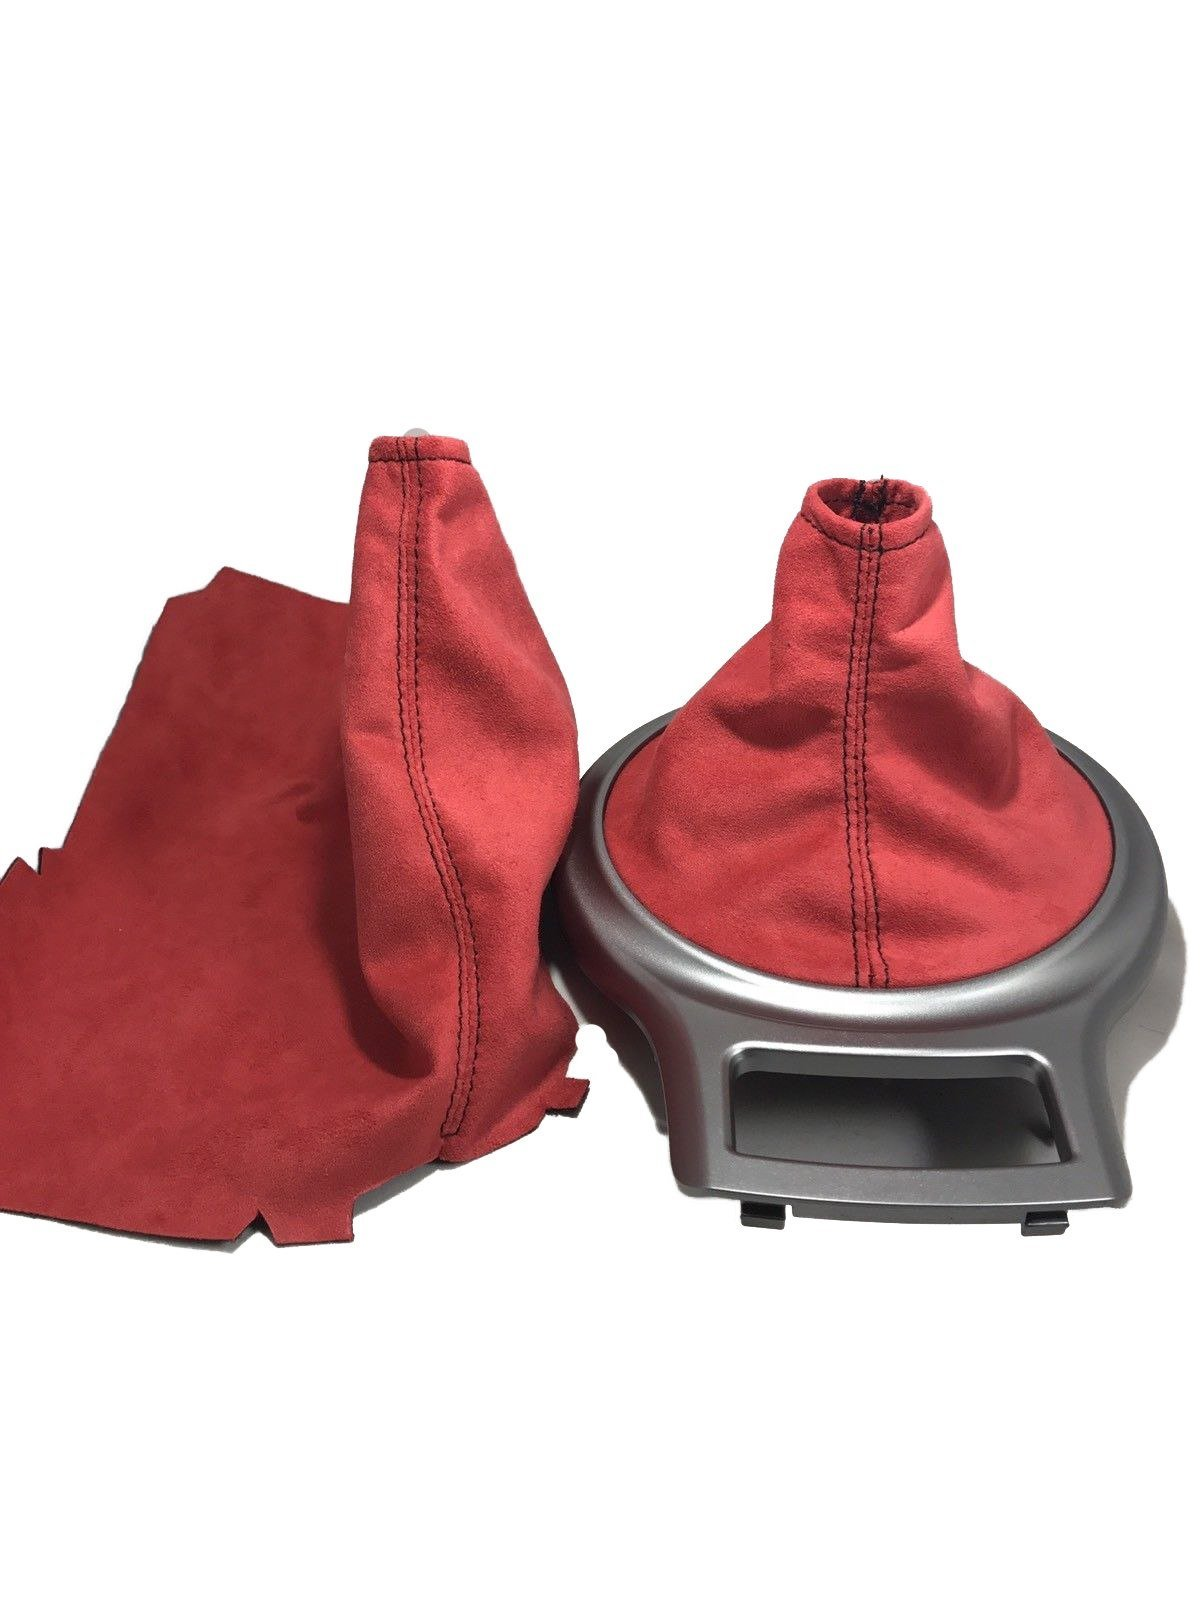 For 13-17 Subaru BRZ/Scion FRS/Toyota 86 Shift and E Brake Boots Red Suede Black Stitch